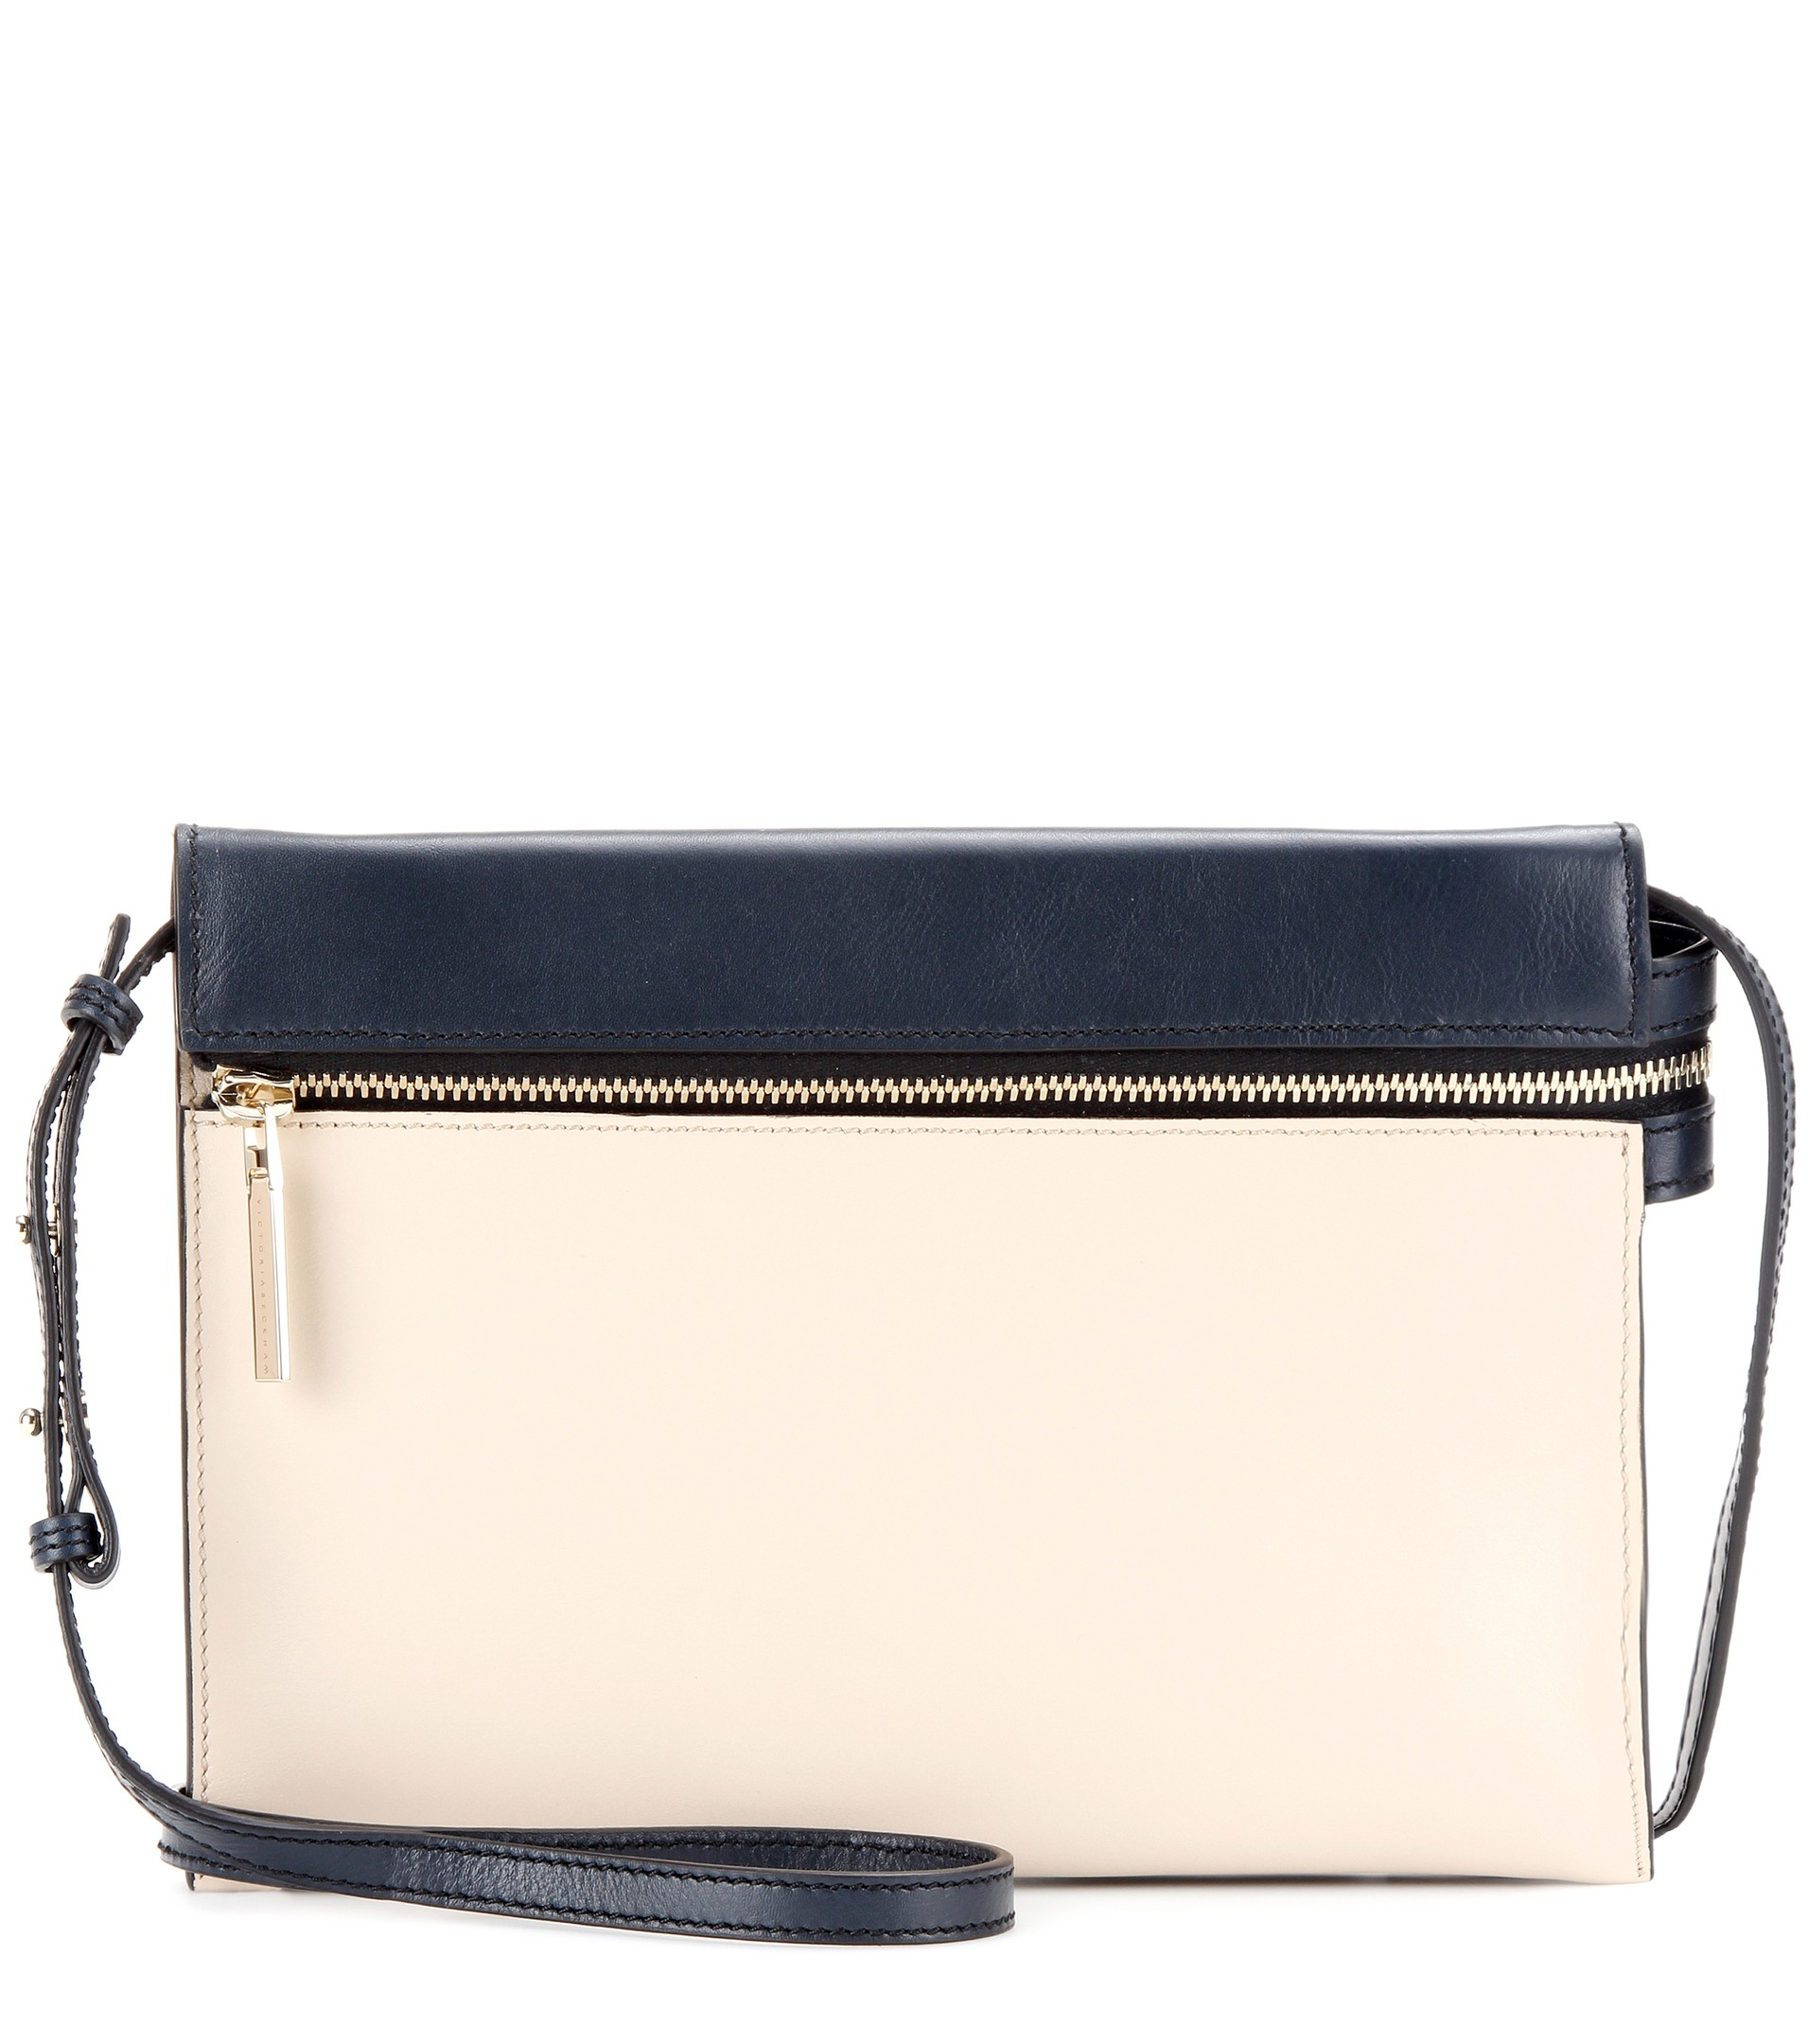 Victoria beckham Zip Two-tone Leather Shoulder Bag in White | Lyst